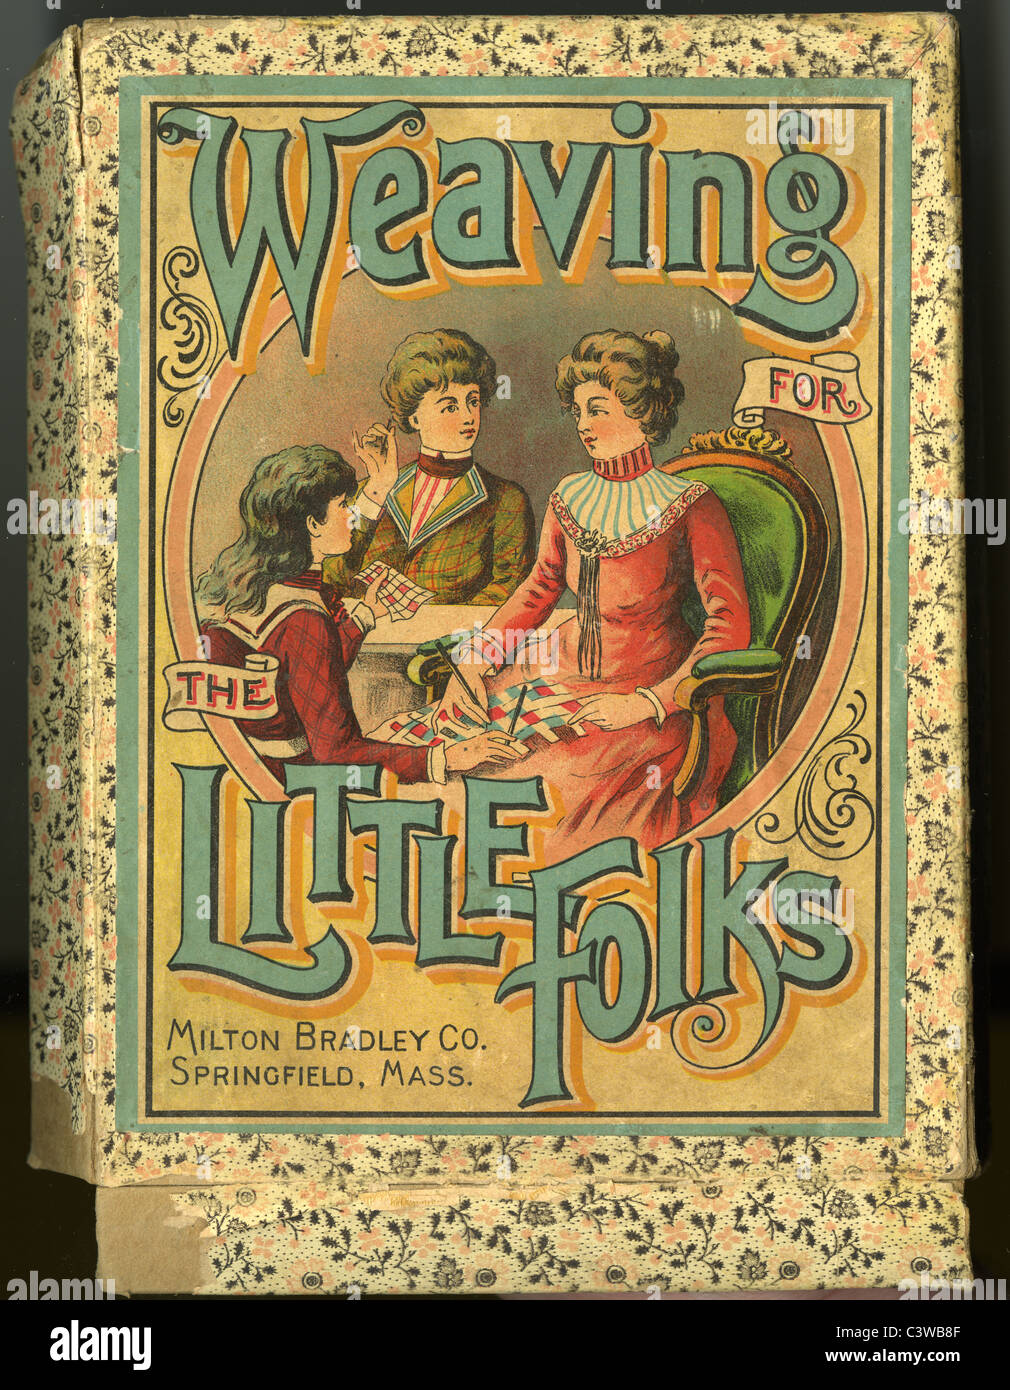 Circa 1860s Weaving for the Little Folks box top, by Milton Bradley. - Stock Image